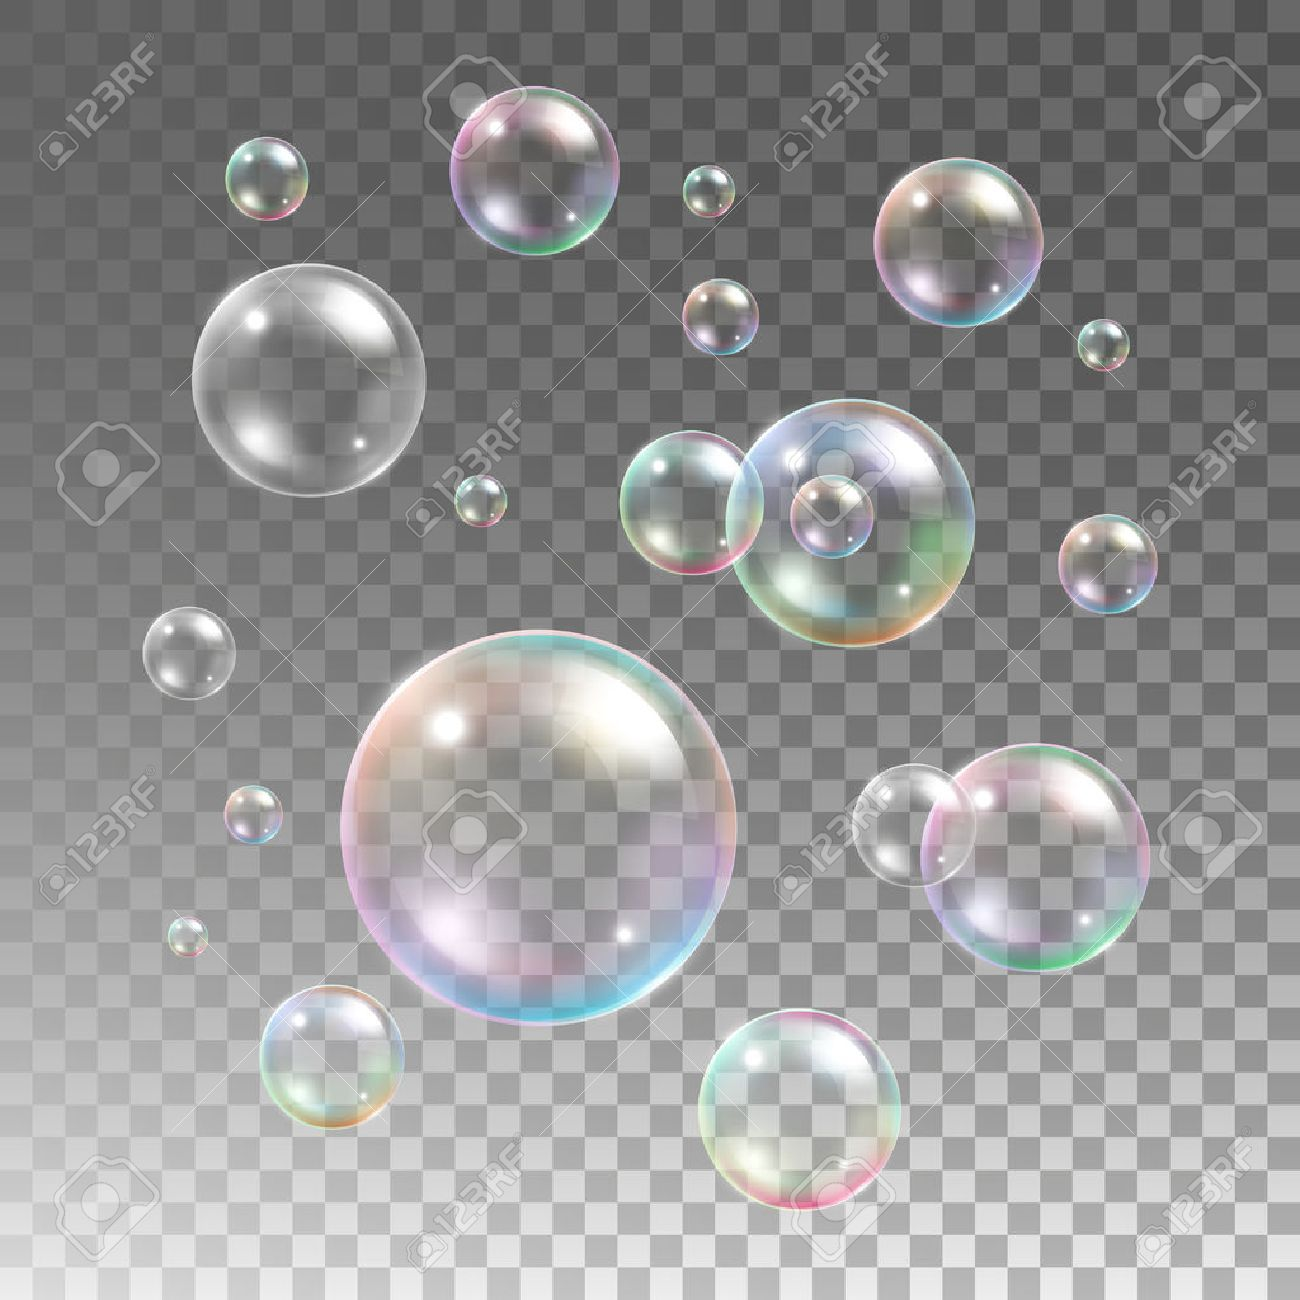 Soap bubble background download free vector art stock graphics - Transparent Multicolored Soap Bubbles Vector Set On Plaid Background Sphere Ball Design Water And